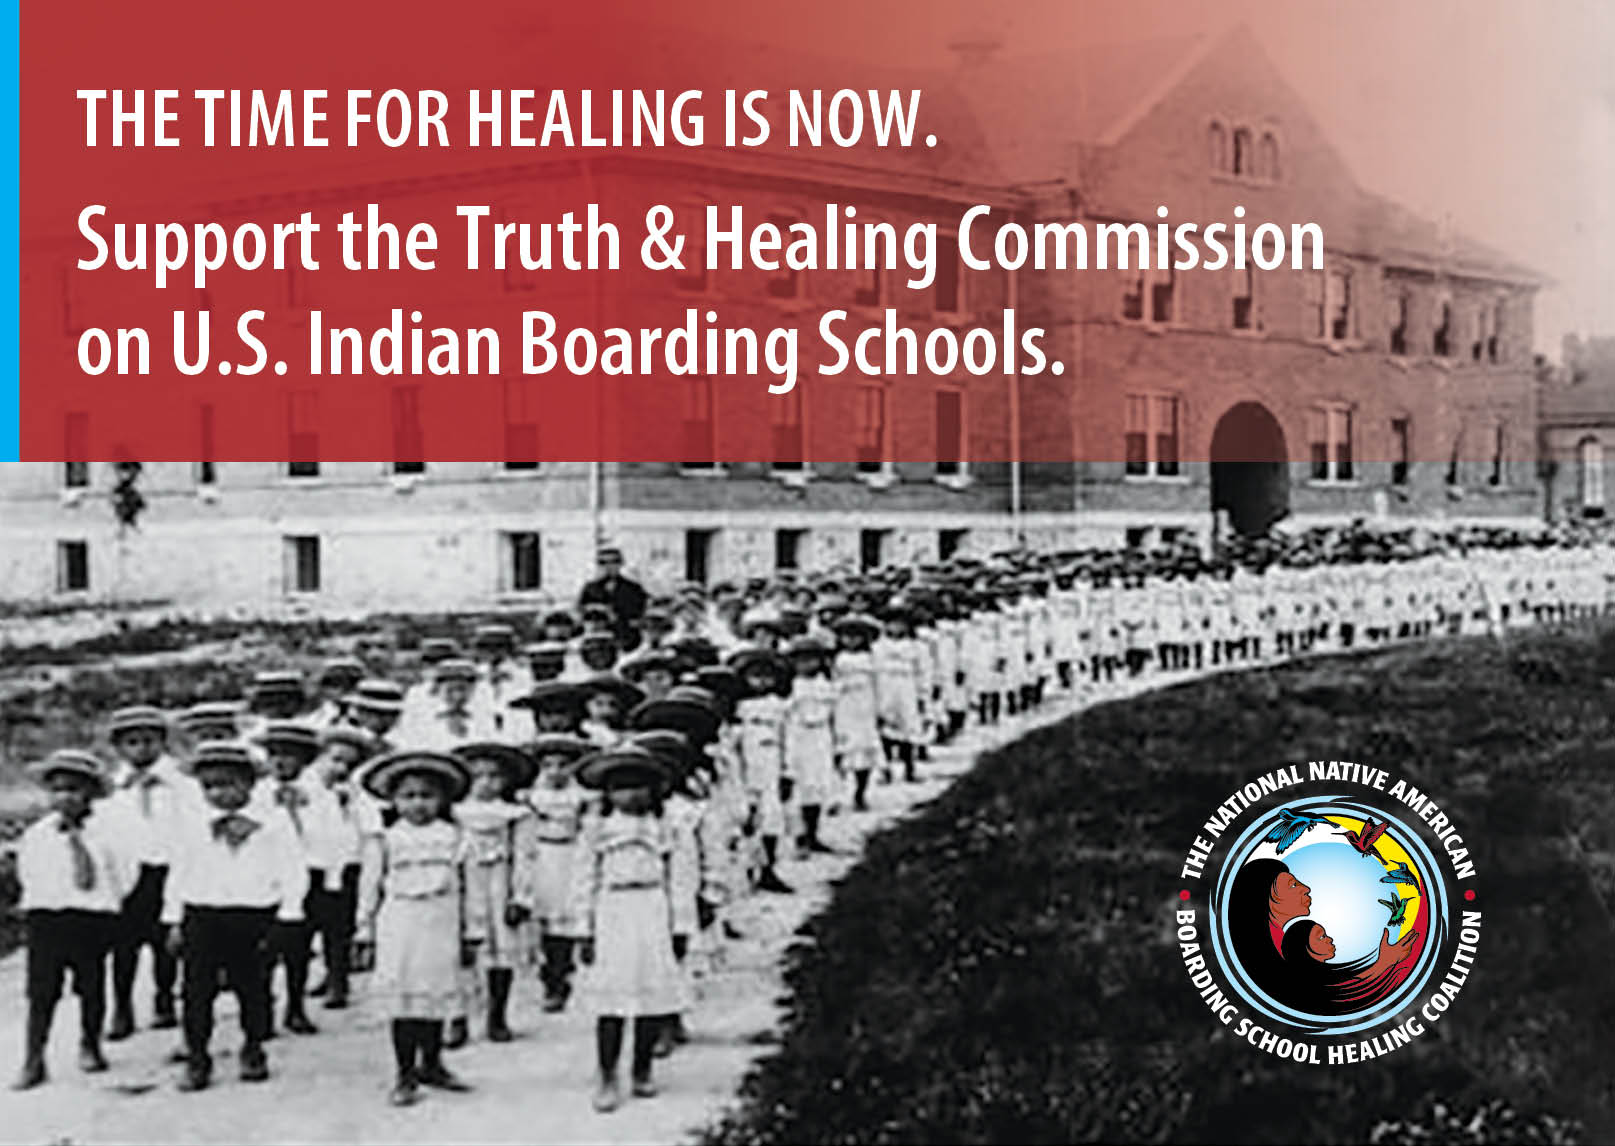 Support the truth and healing commission.